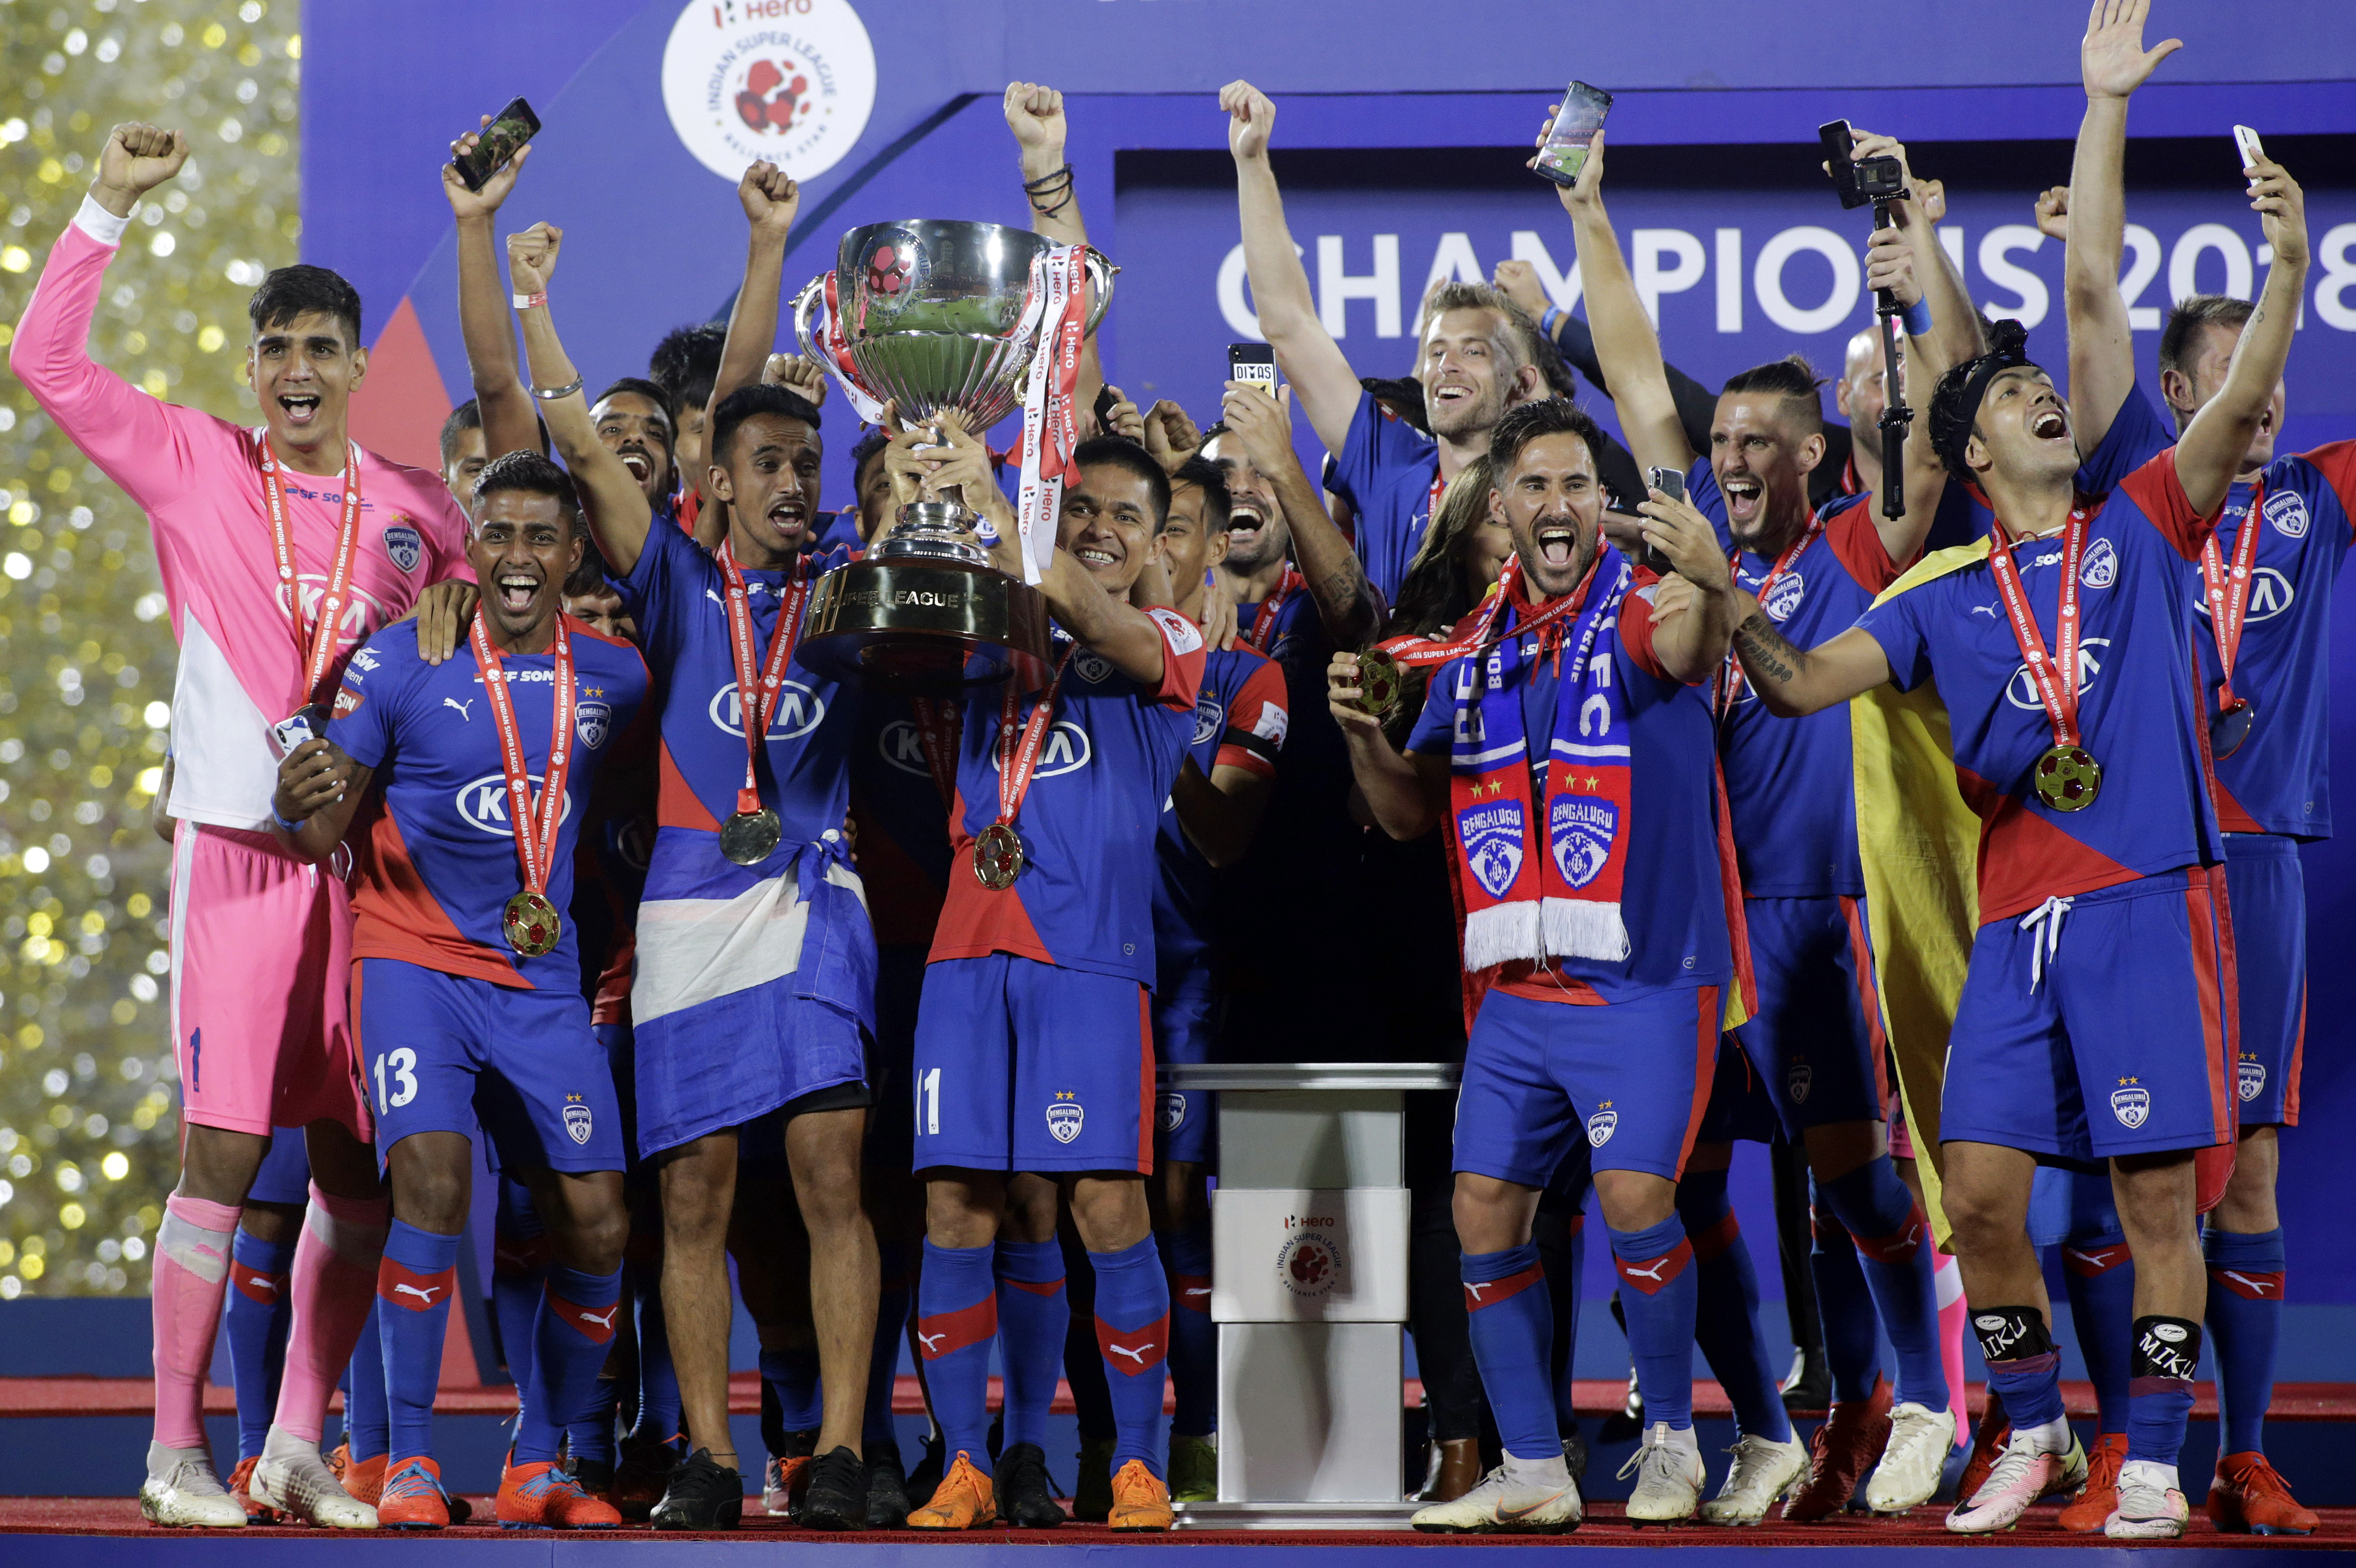 Bangaluru's captain Sunil Chhetri celebrates with teammates as he holds the trophy after winning the final of Indian Super League in Mumbai - PTI